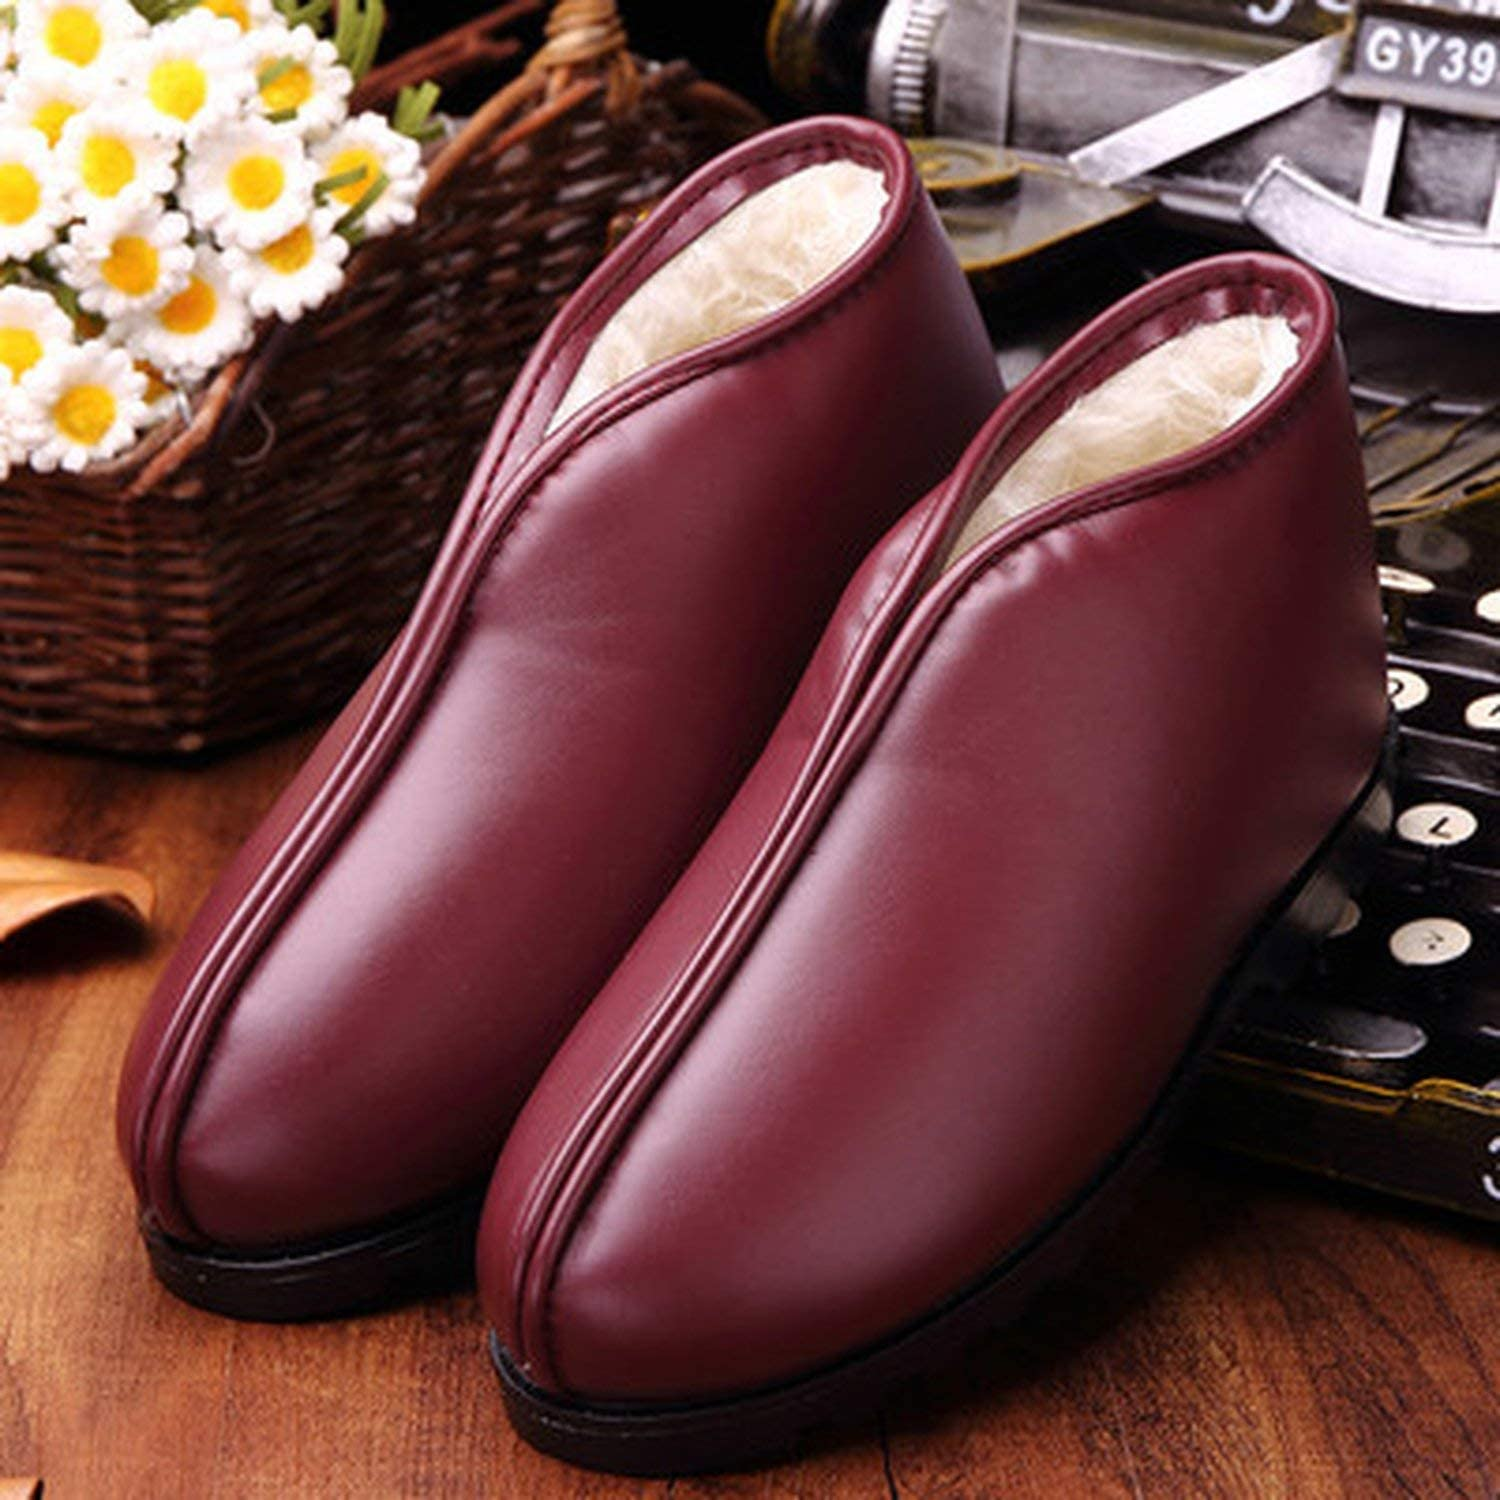 Dai Yao Warm Winter Mothers Cotton Shoes Elderly Snow Boots Warm Shoes Boots Female Flat Shoes,1,9